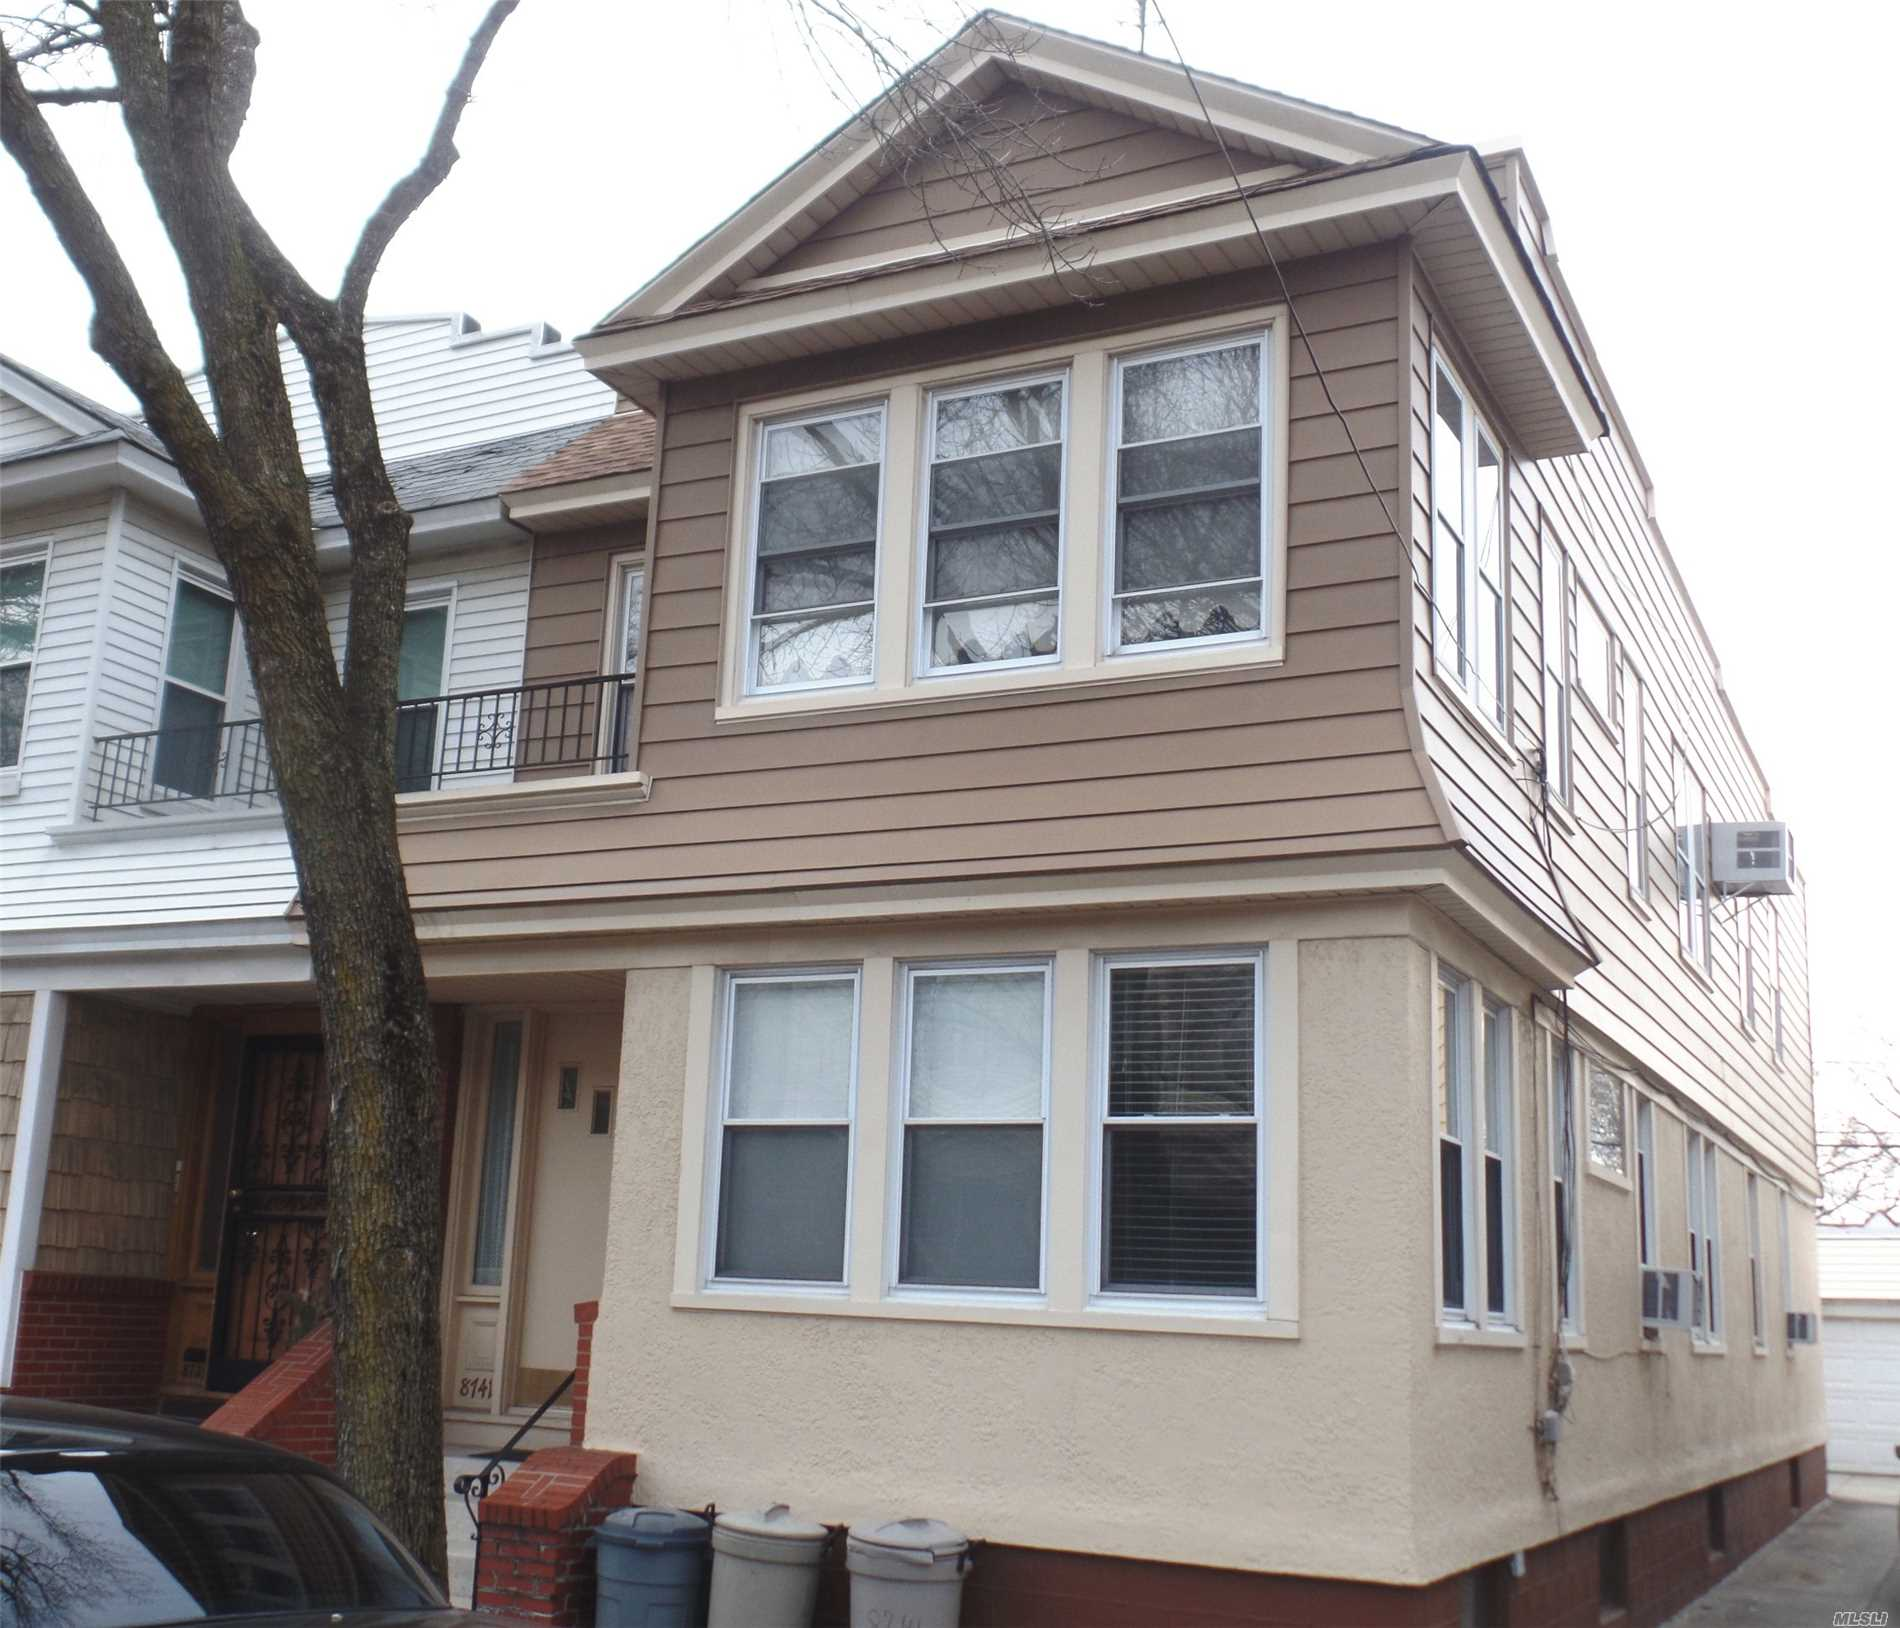 DESIRABLE GLENDALE SEMI-DETACHED 2 FAMILY HOME. QUIET ONE WAY STREET. CENTRALLY LOCATED. 1ST FLR: ENTRY FOYER, LIVING ROOM, FDR, EIK, 2 BEDROOMS, DEN & FULL BATH. 2ND FLR: LIVING ROOM, FDR, EIK, 3 BEDROOMS, DEN & FULL BATH. FULL UNFINISHED BASEMENT WITH OSE. LAUNDRY & UTILITIES. 2 CAR DETACHED GARAGE & DRIVEWAY! UPDATED HEATING SYSTEM & MOST WINDOWS & ROOF.